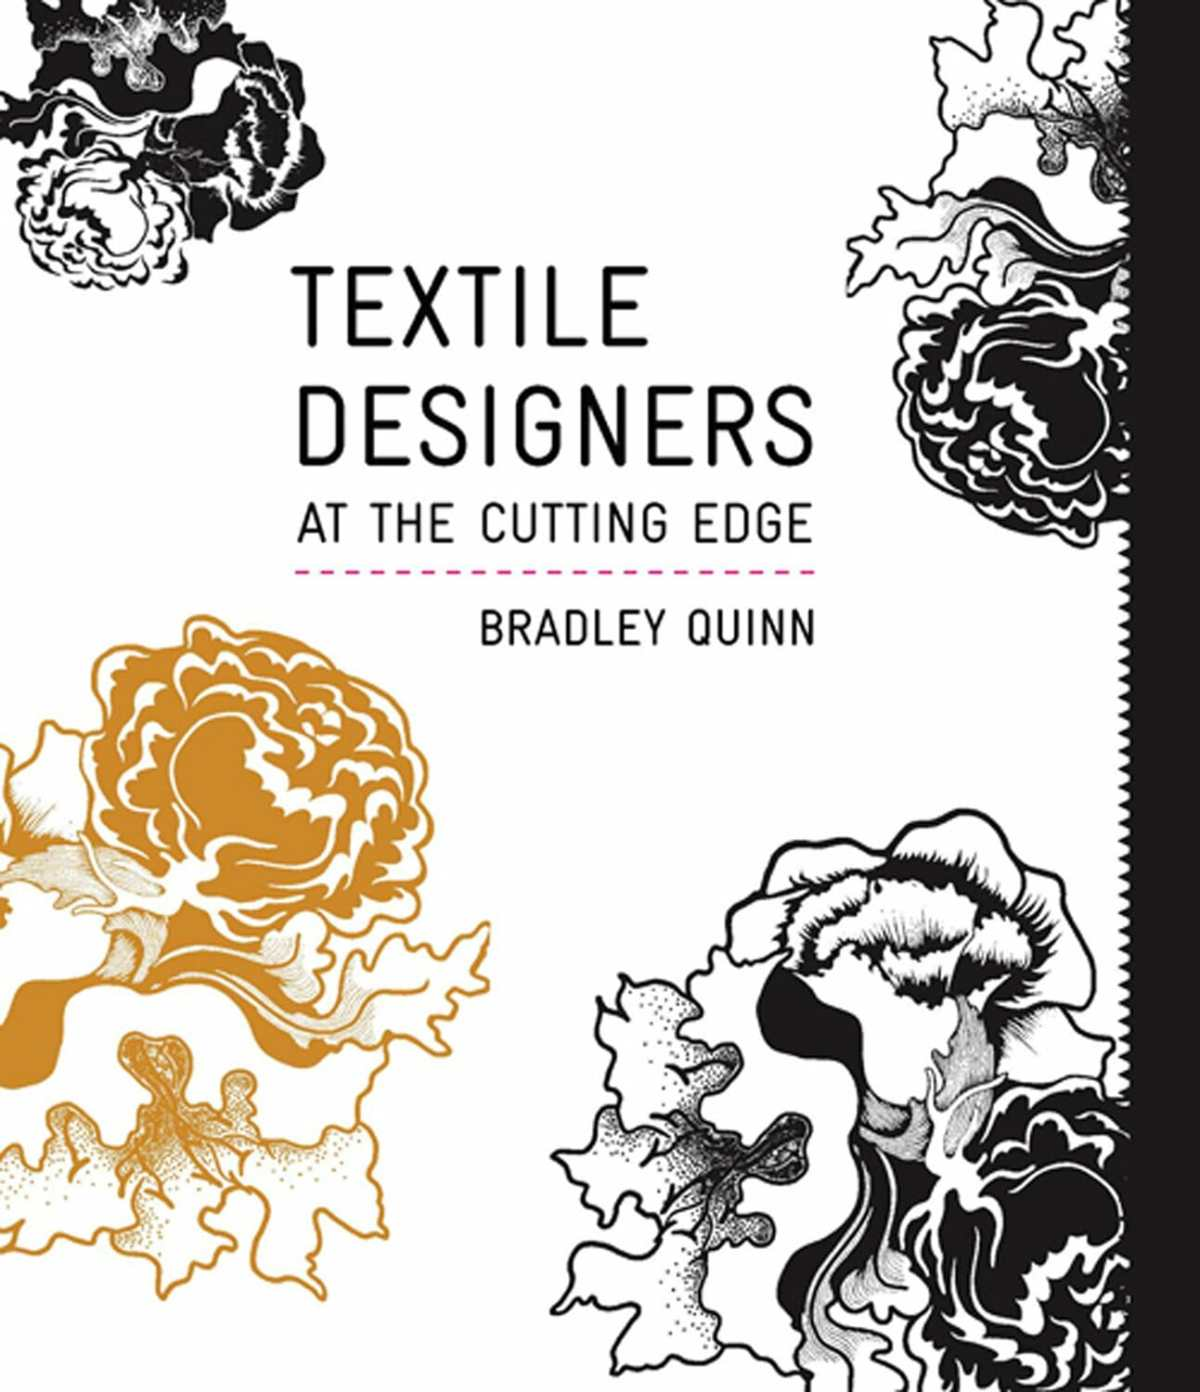 Book Review – Textile designers at the cutting edge by Bradley Quinn